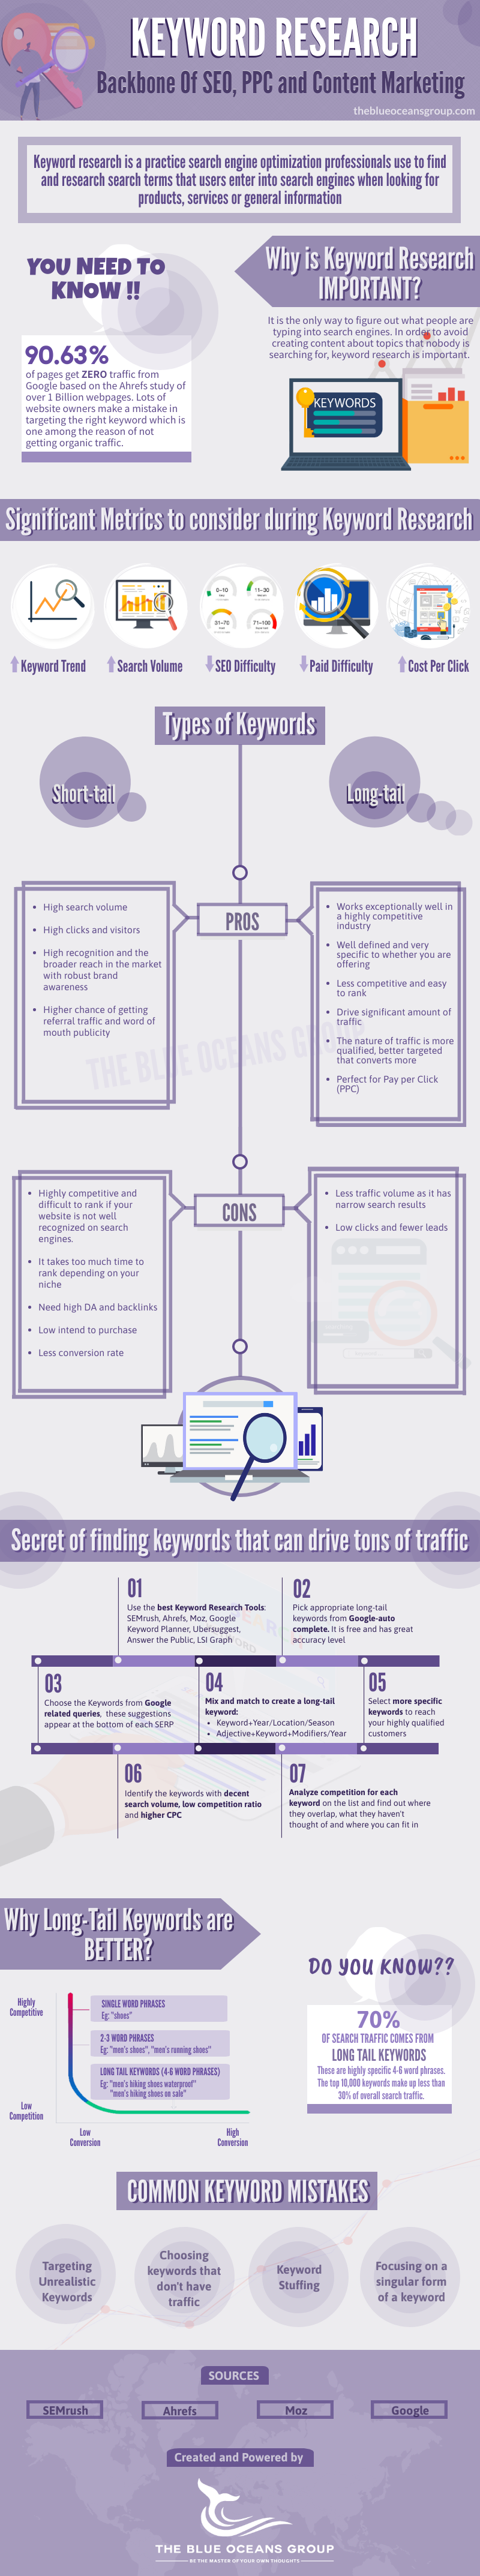 How to do it Keyword Study A Step by Step Guide 2020 #infographic